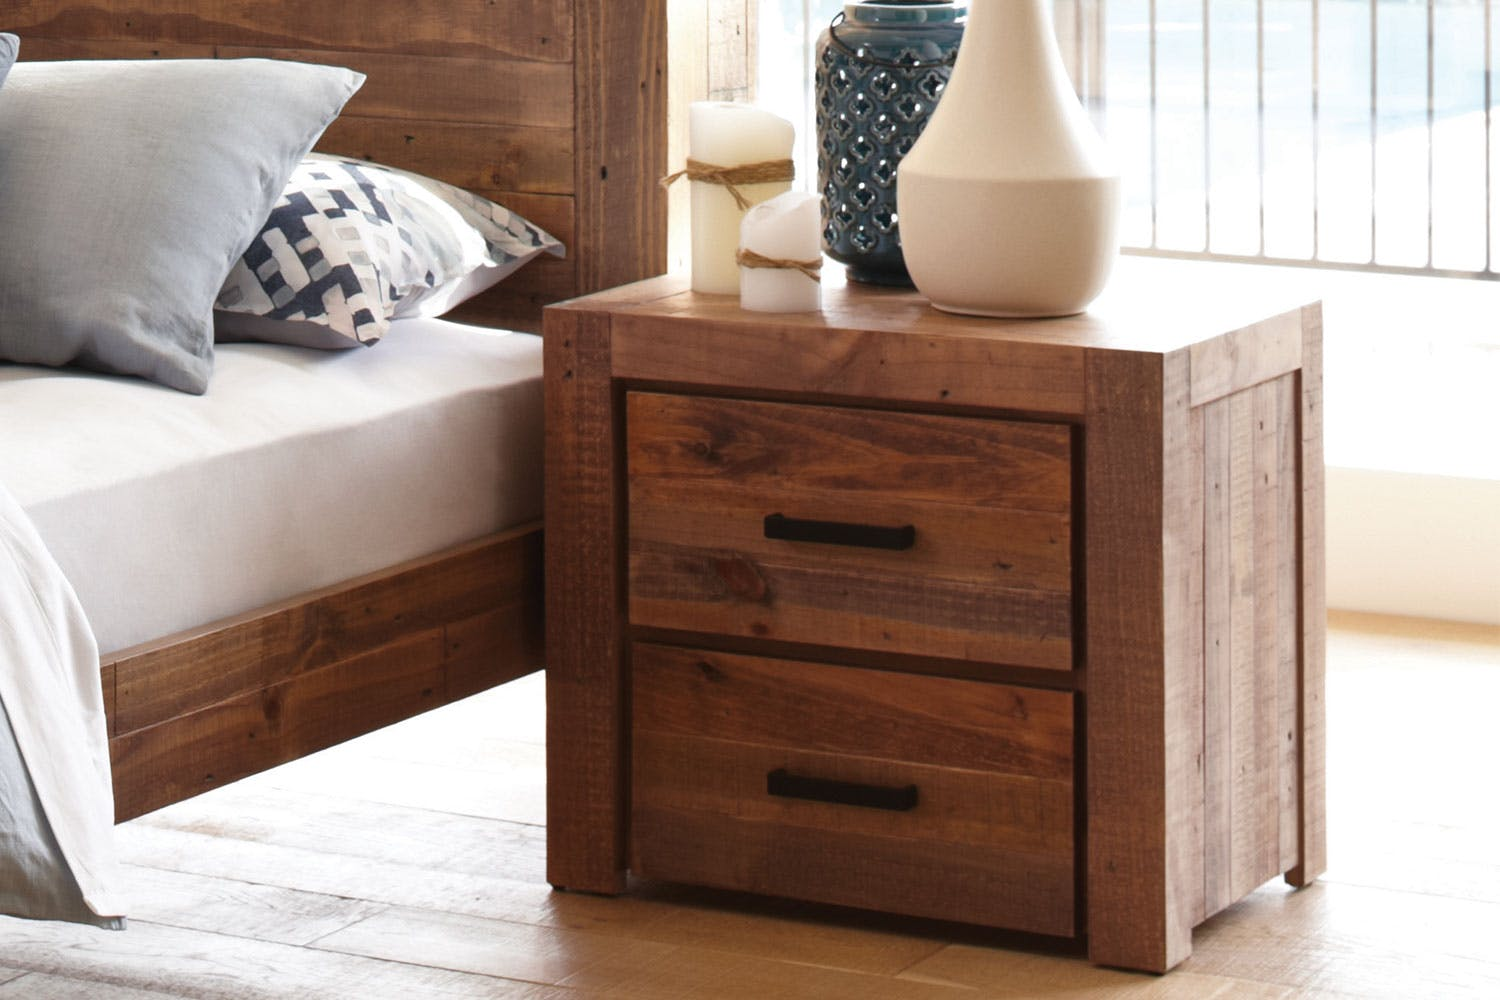 Yes! Bedside Tables Are Absolutely Necessary (Besides Table)